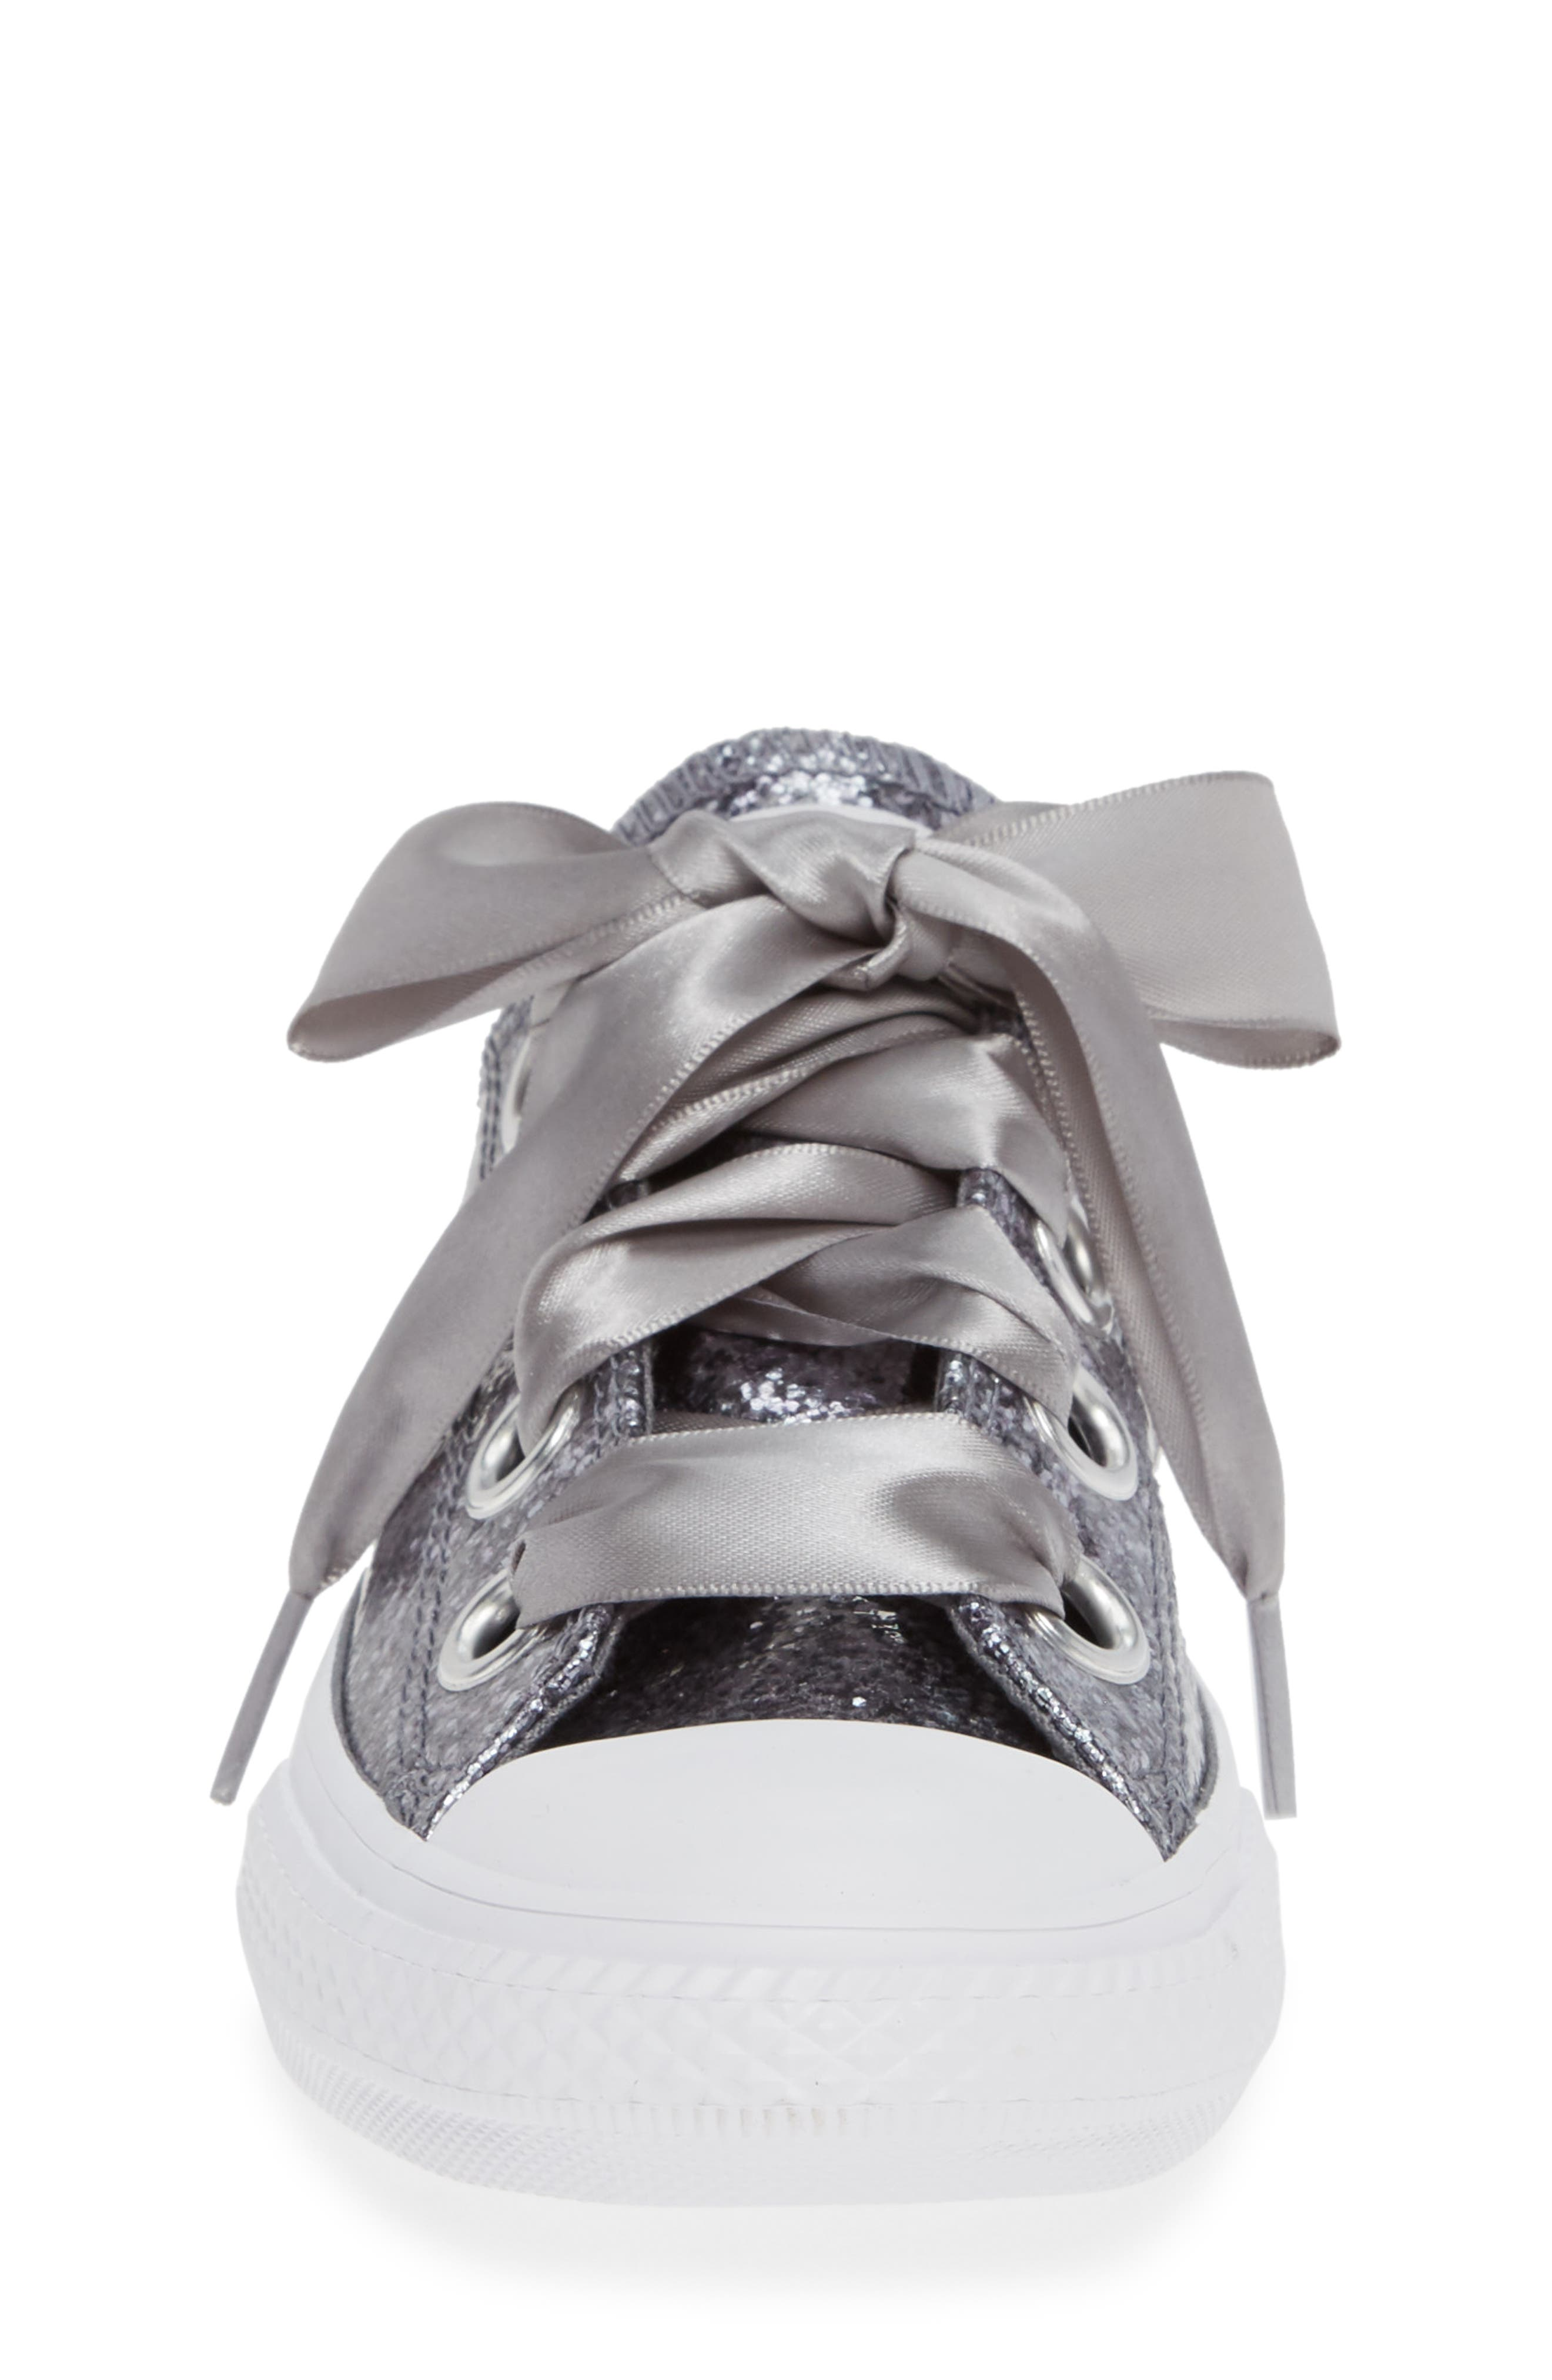 CONVERSE, Chuck Taylor<sup>®</sup> All Star<sup>®</sup> Glitter Big Eyelet Ox Sneaker, Alternate thumbnail 4, color, 020